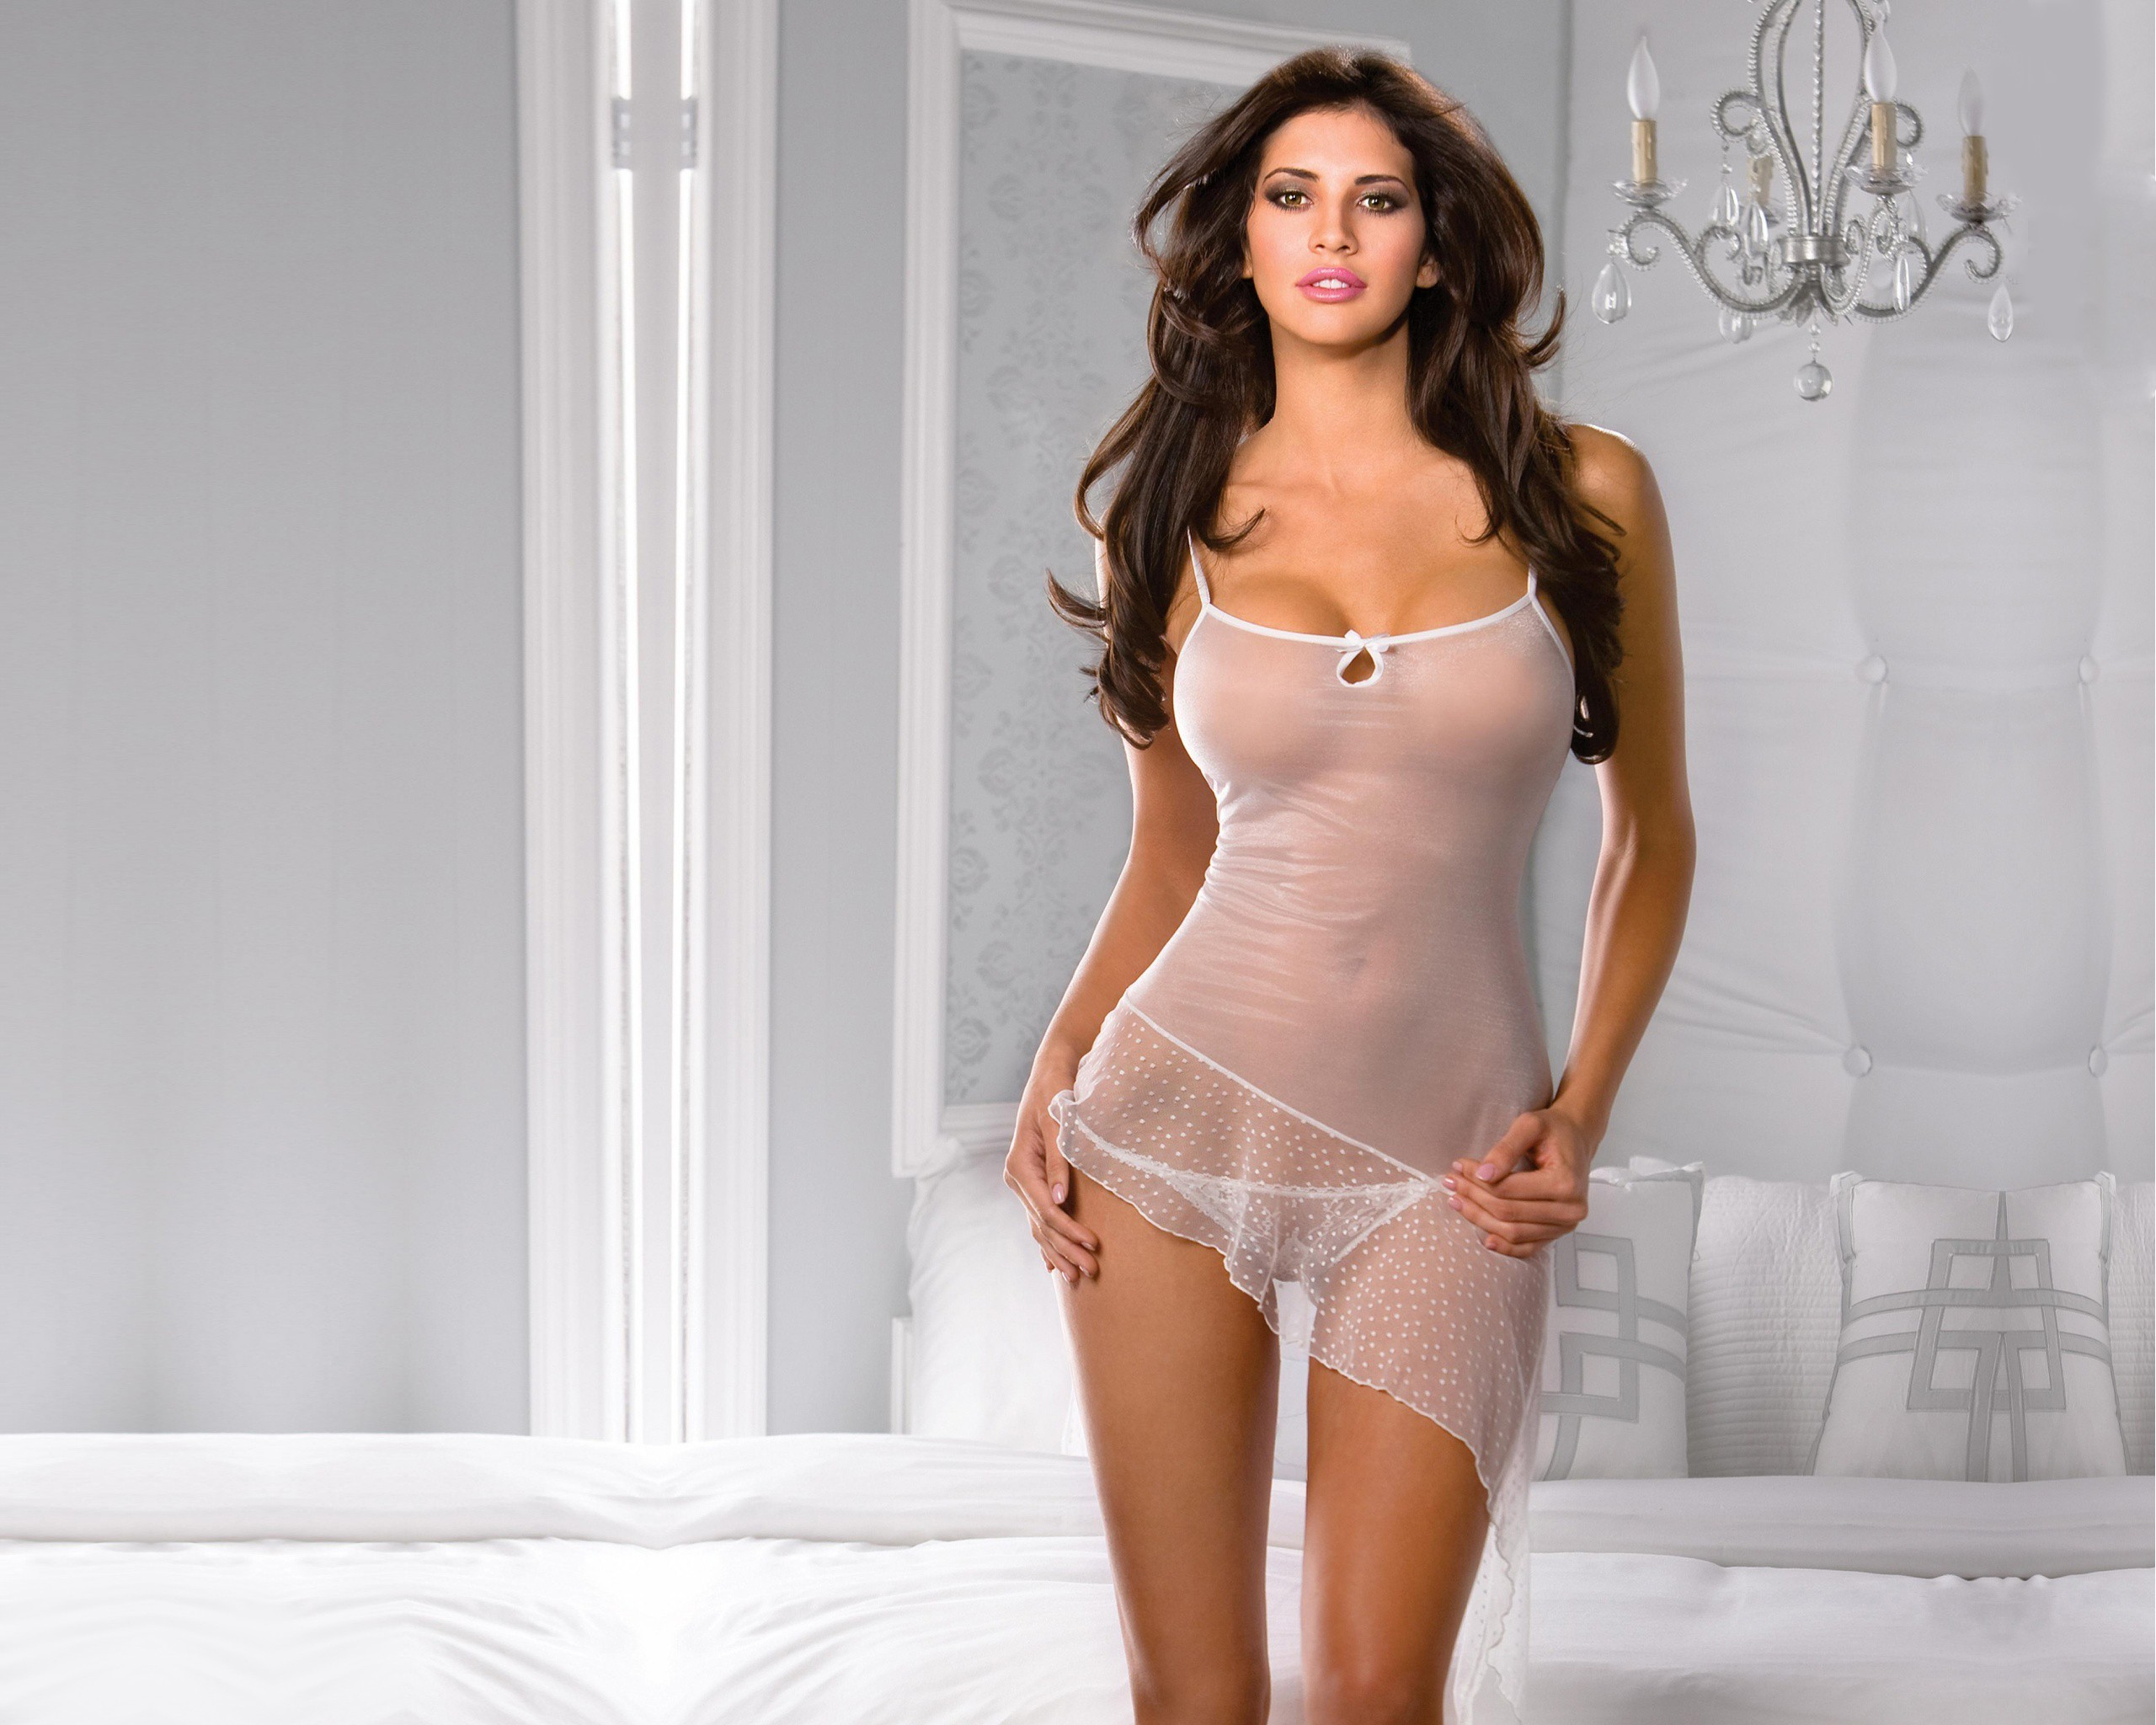 lingerie brunettes Women hope HD Wallpaper